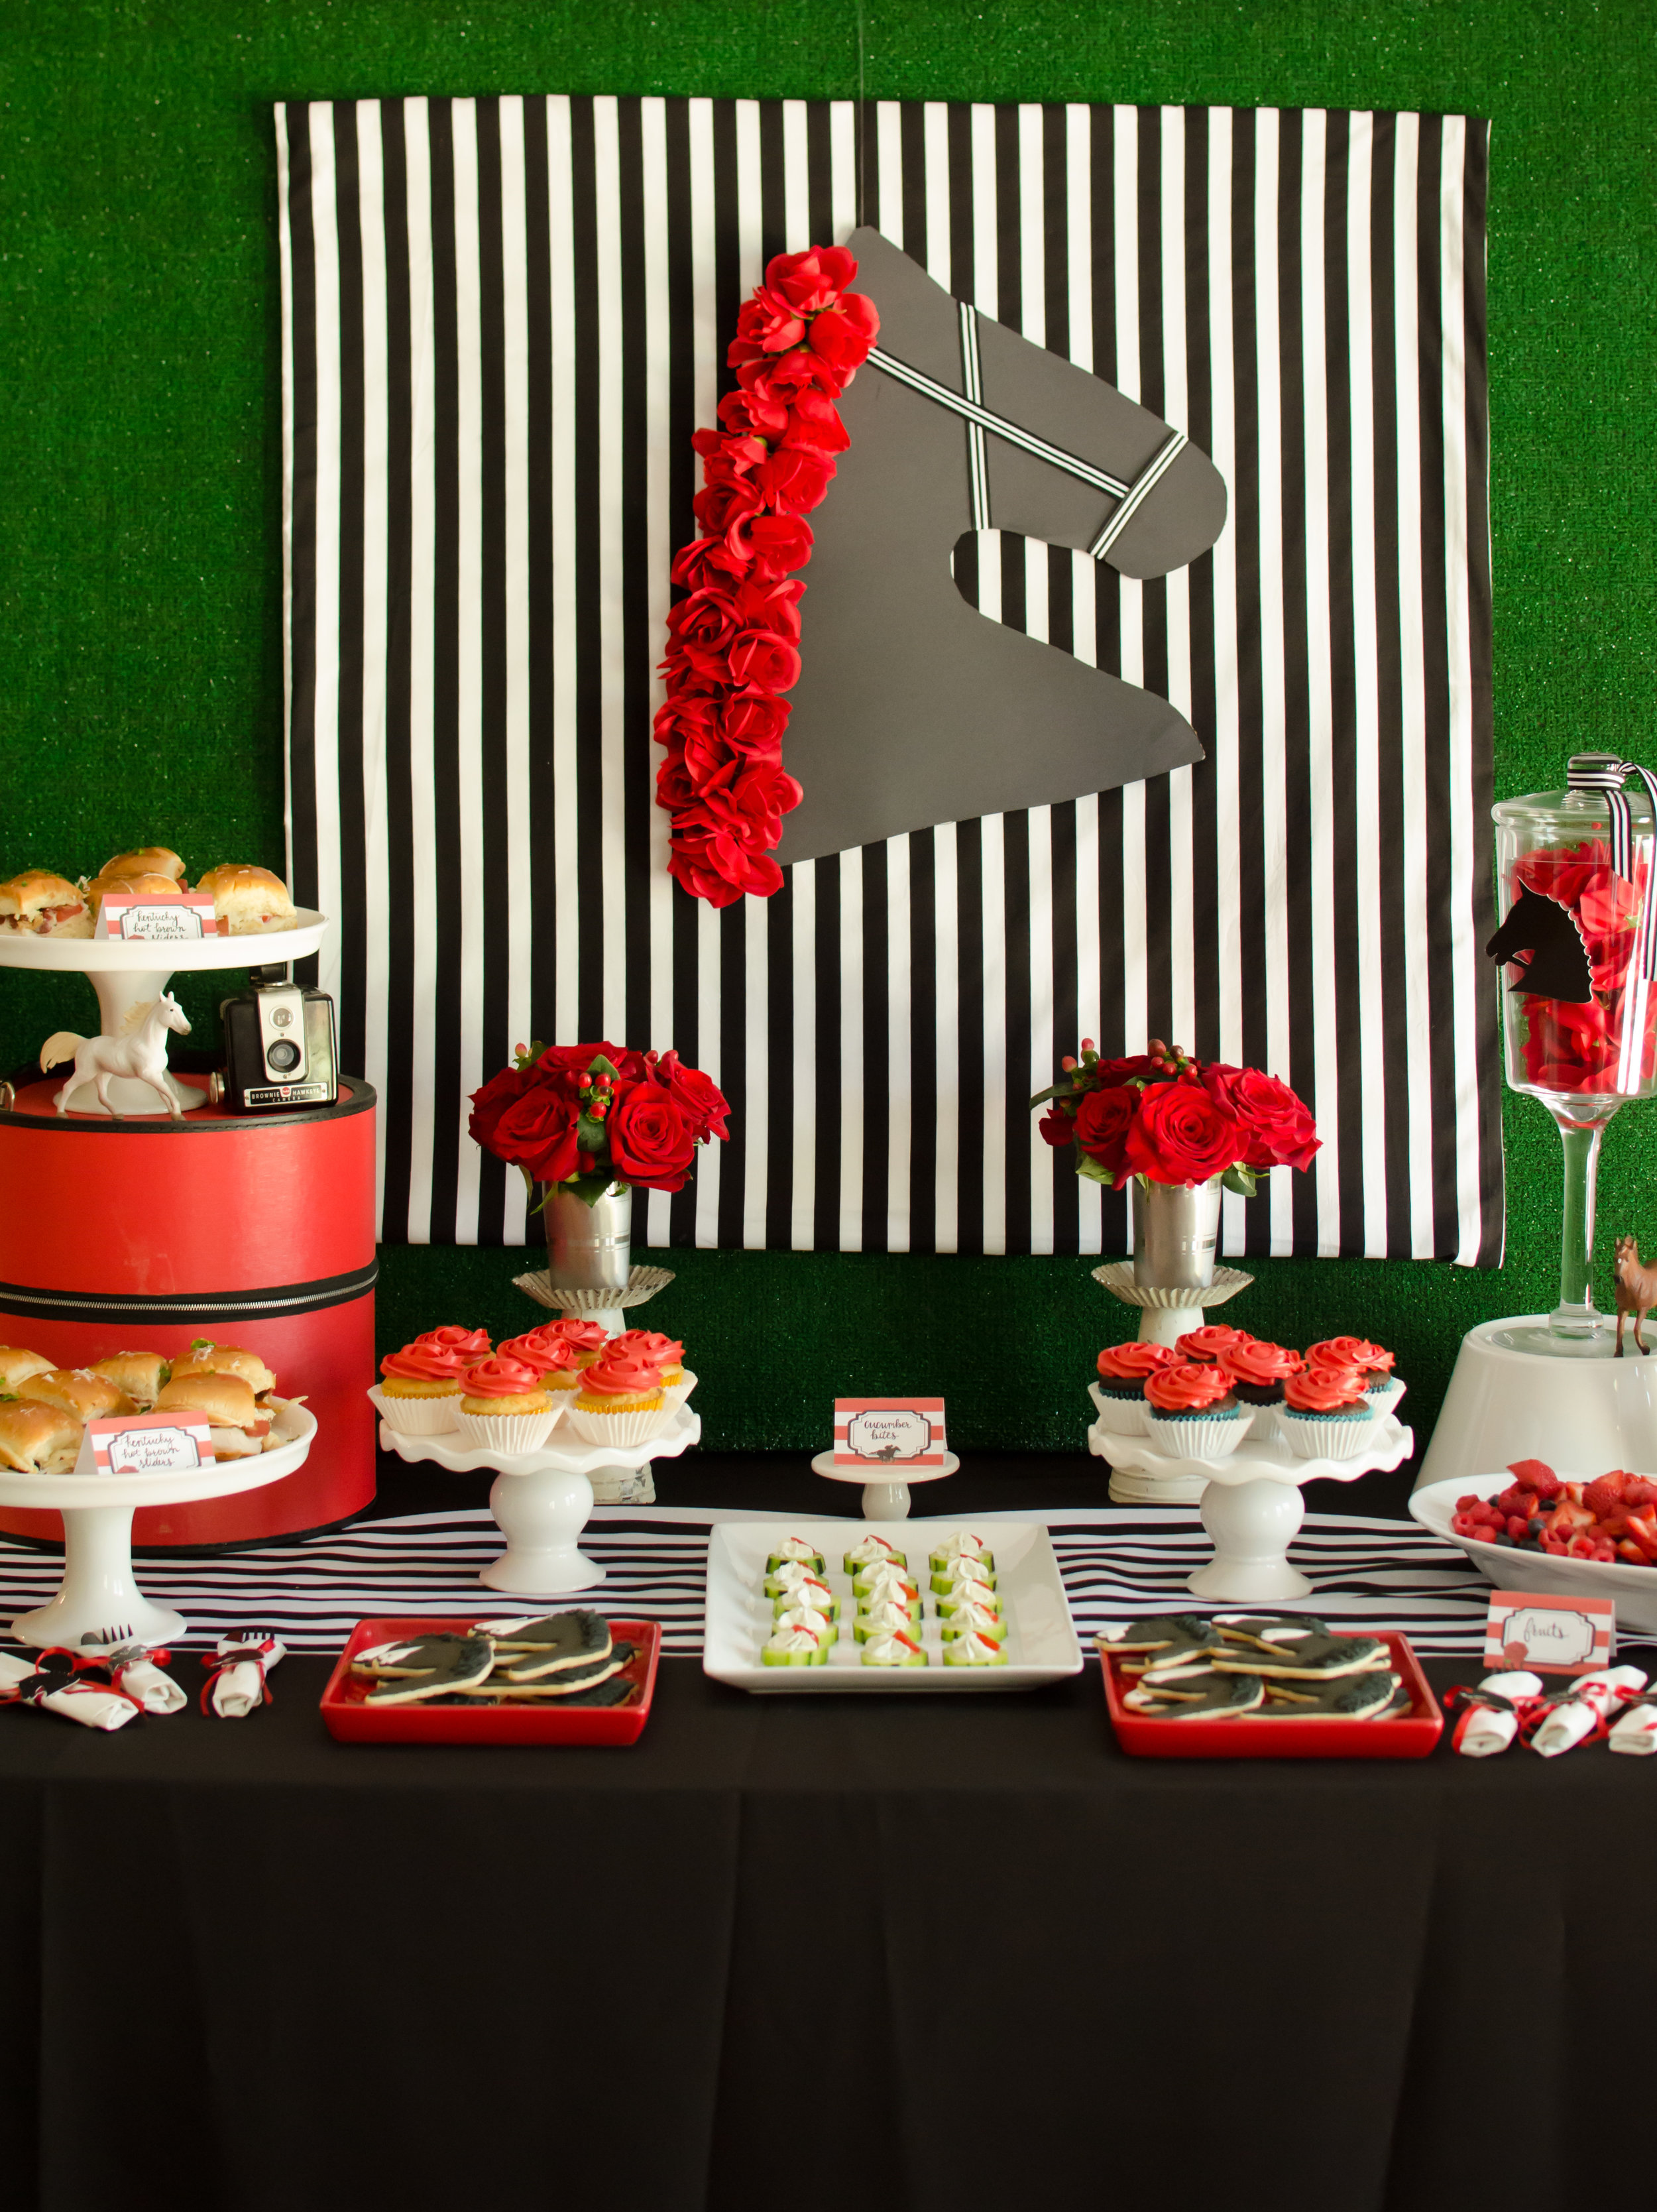 How to set up the perfect table for your Kentucky Derby Party including finger foods and desserts. Styling by party planner Mint Event Design in Austin Texas www.minteventdesign.com #kentuckyderbyparty #kentuckyderby #partyideas #derbyday #runfortheroses #partytable